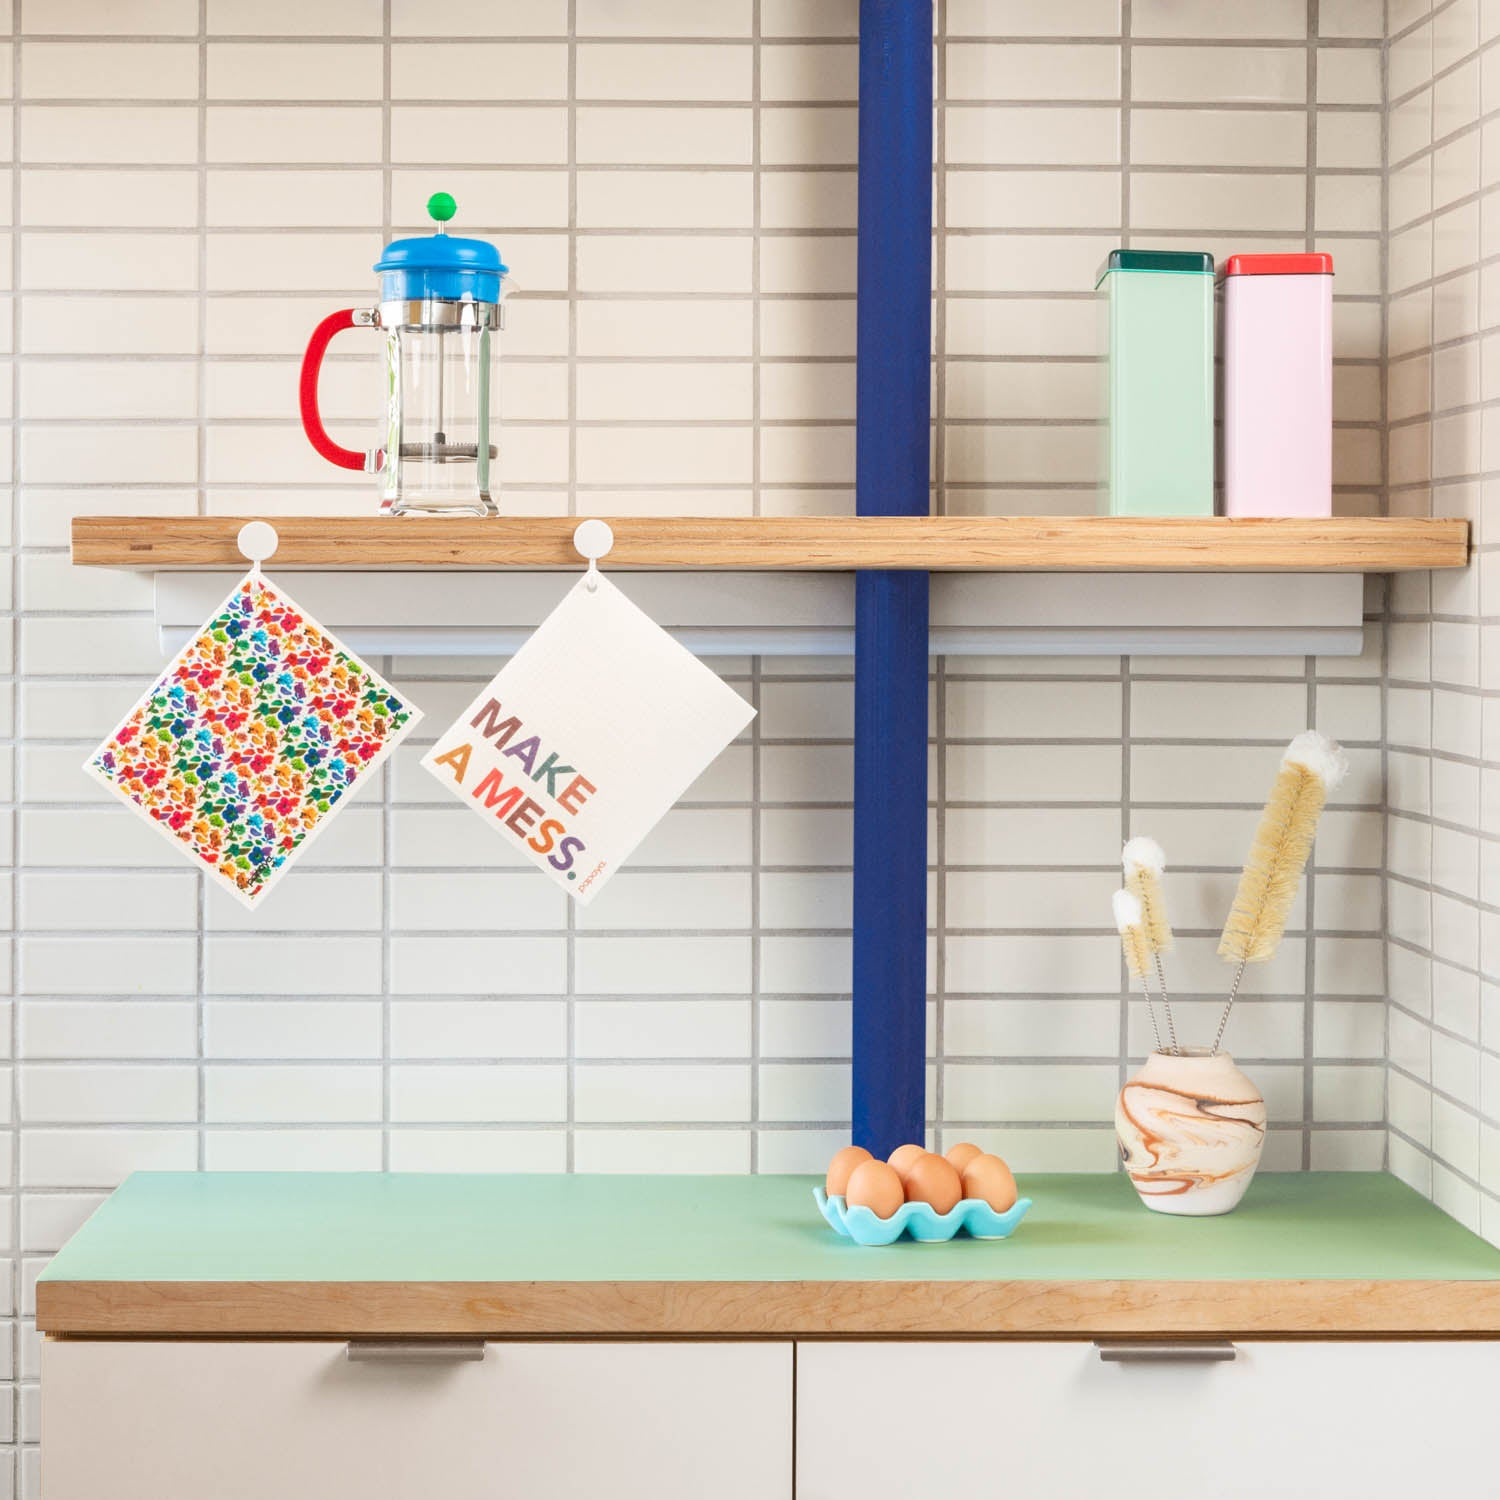 Two reusable paper towels hanging on hooks in modern kitchen with colorful floral design and make a mess words